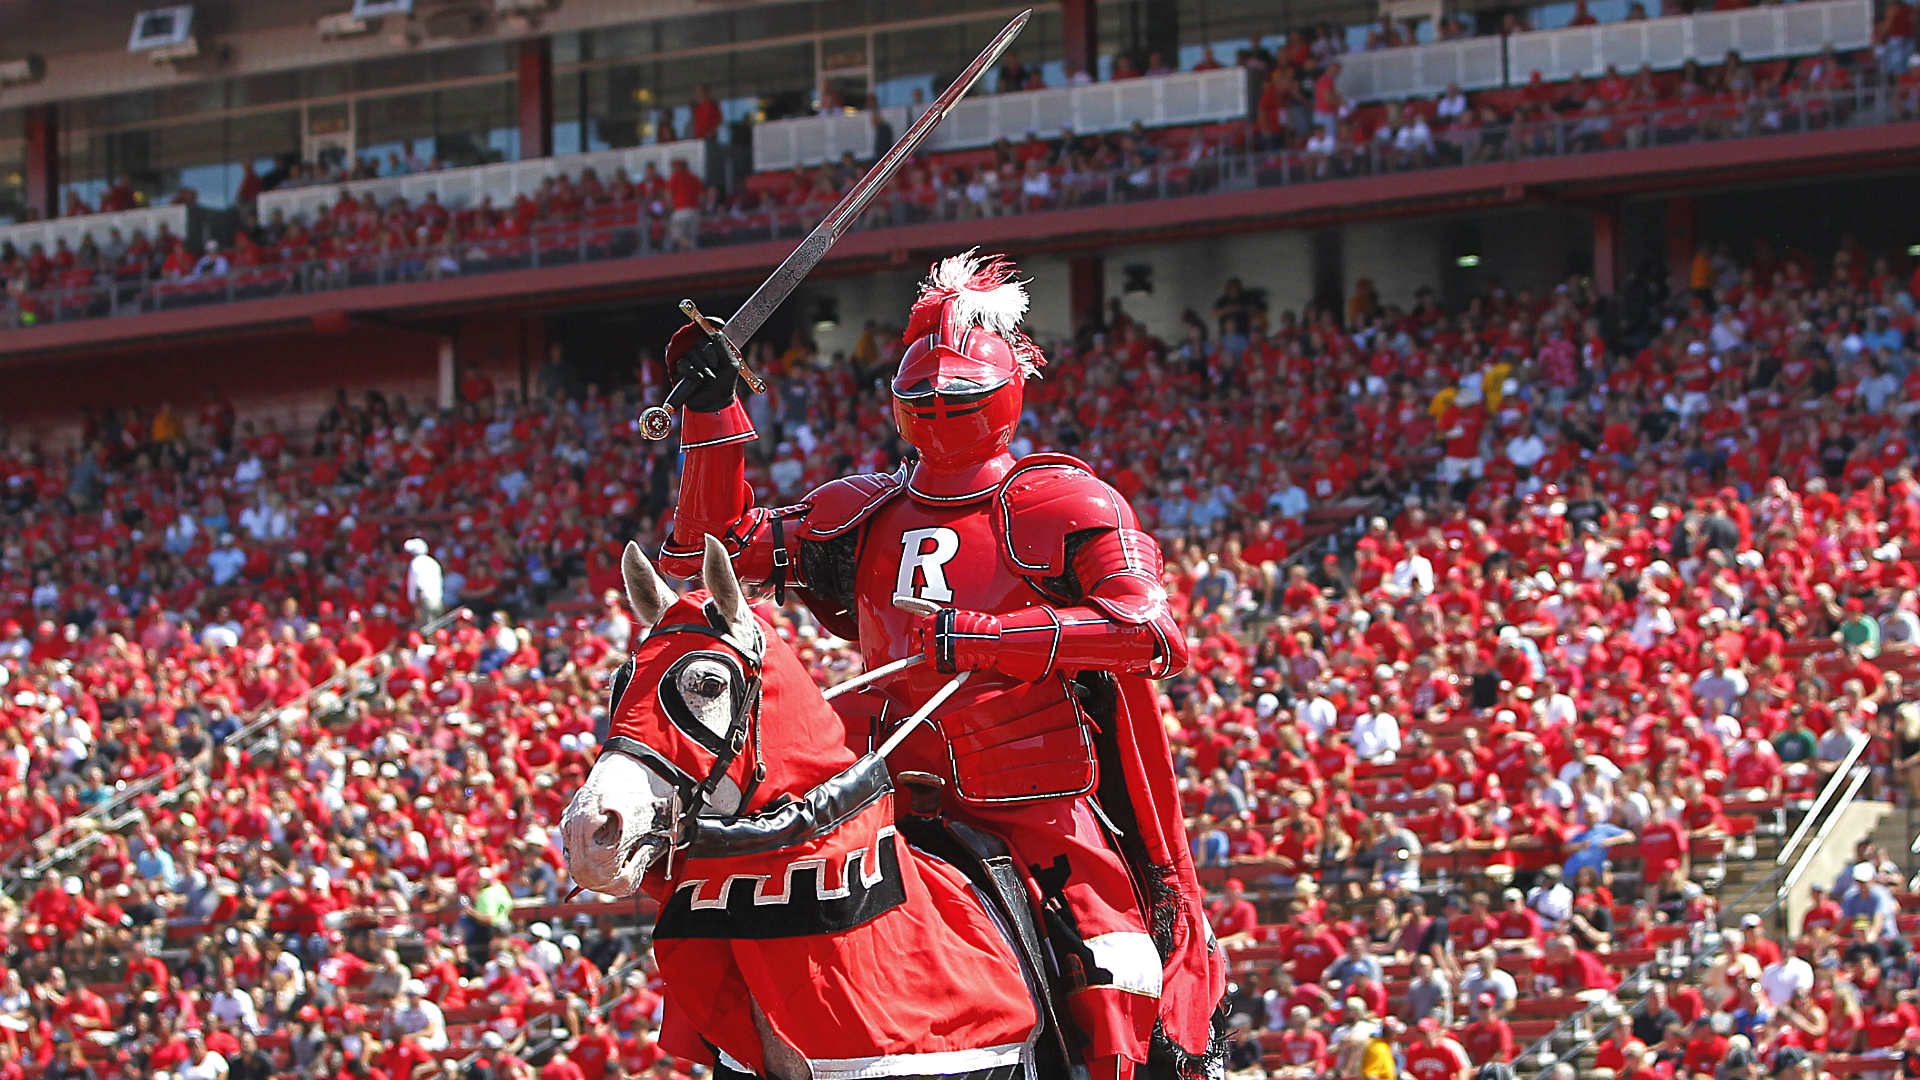 The NCAA has placed the Rutgers Scarlet Knights on probation